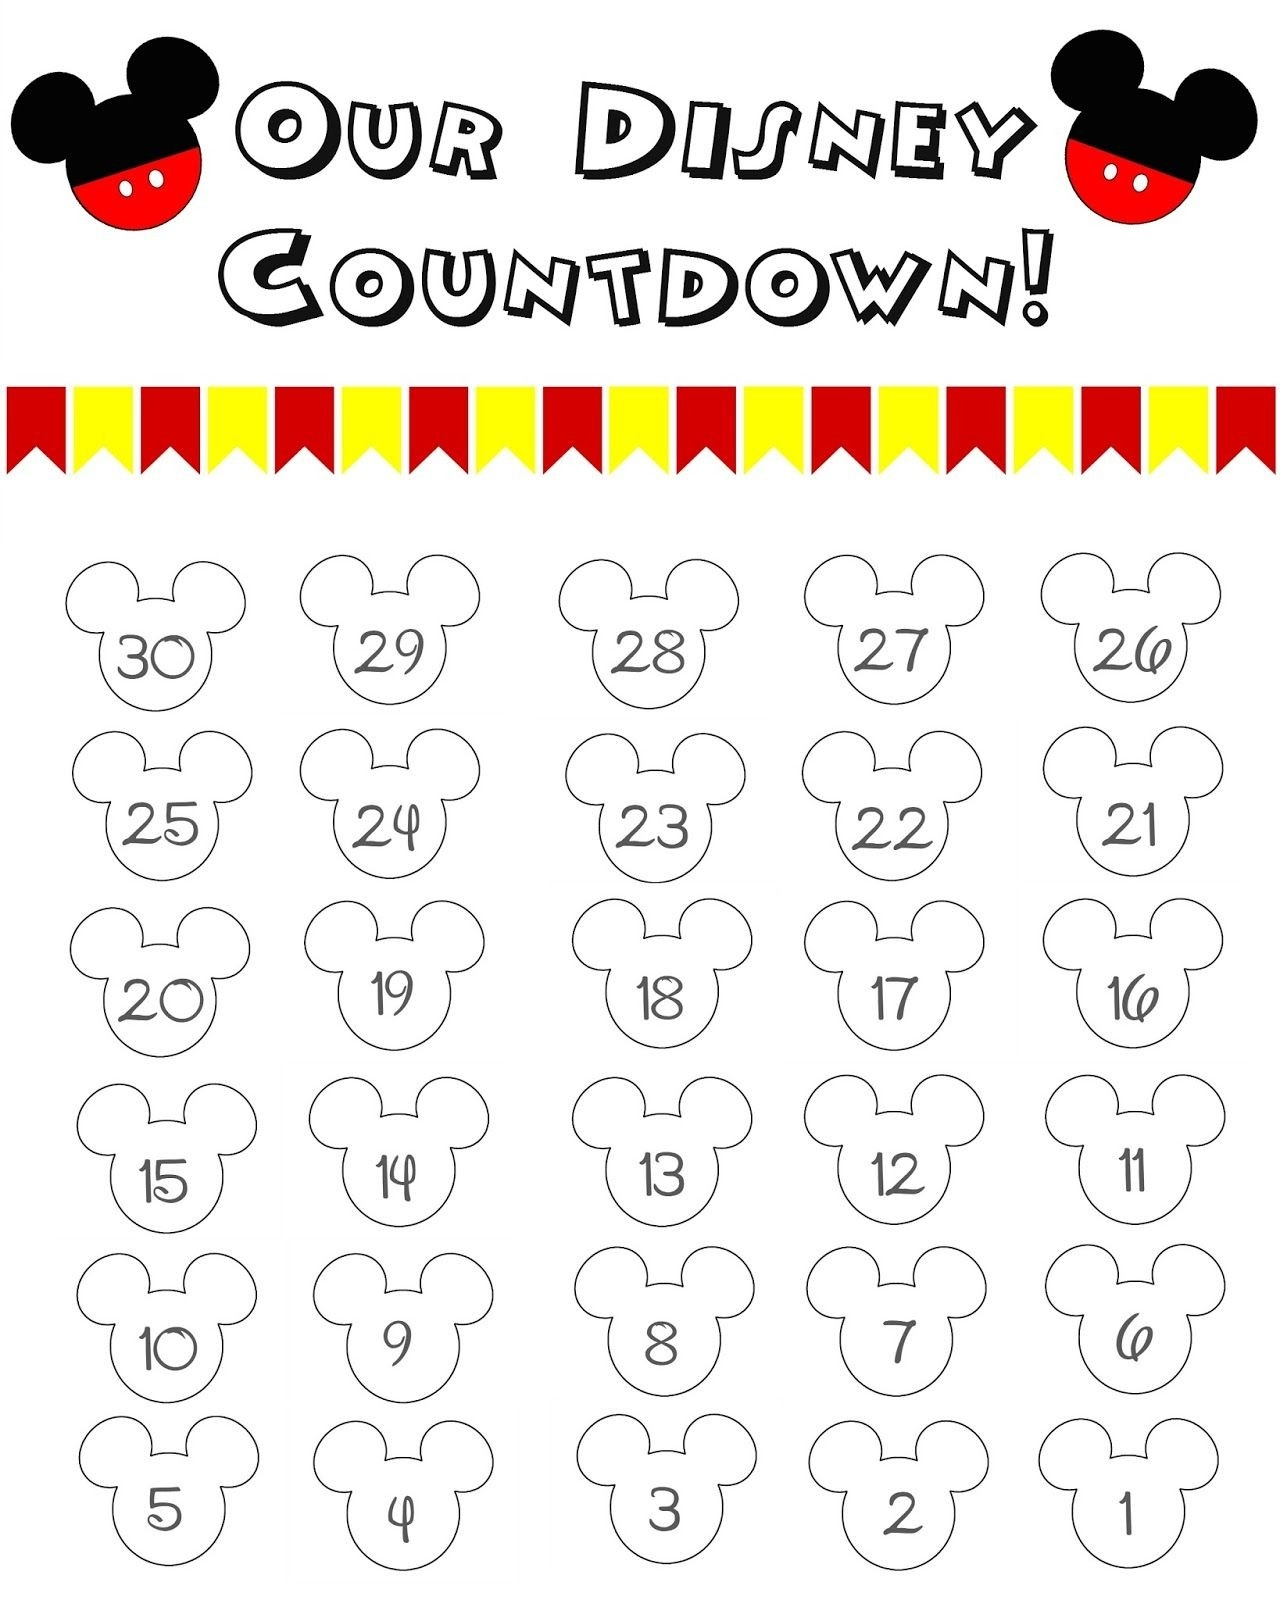 Disney World Countdown Calendar - Free Printable | Disney-Holiday Countdown Template Printable